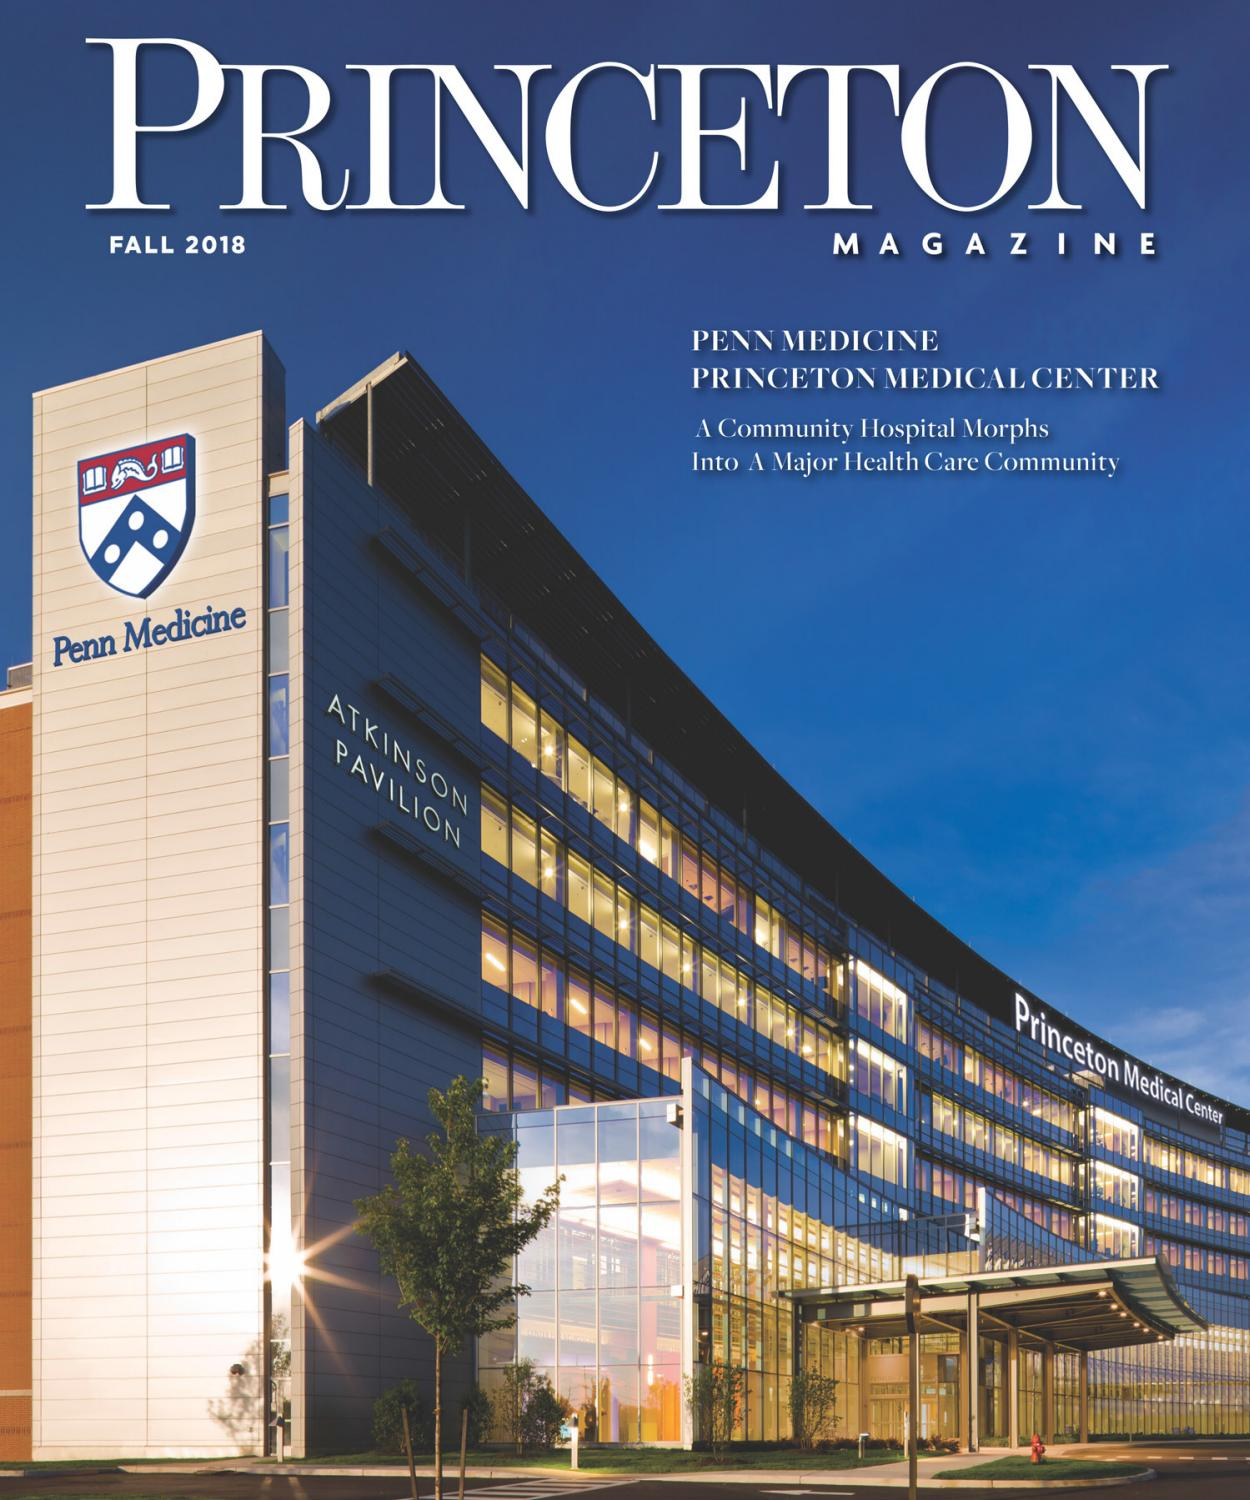 53f42514157 Princeton Magazine Fall 2018 by Witherspoon Media Group - issuu